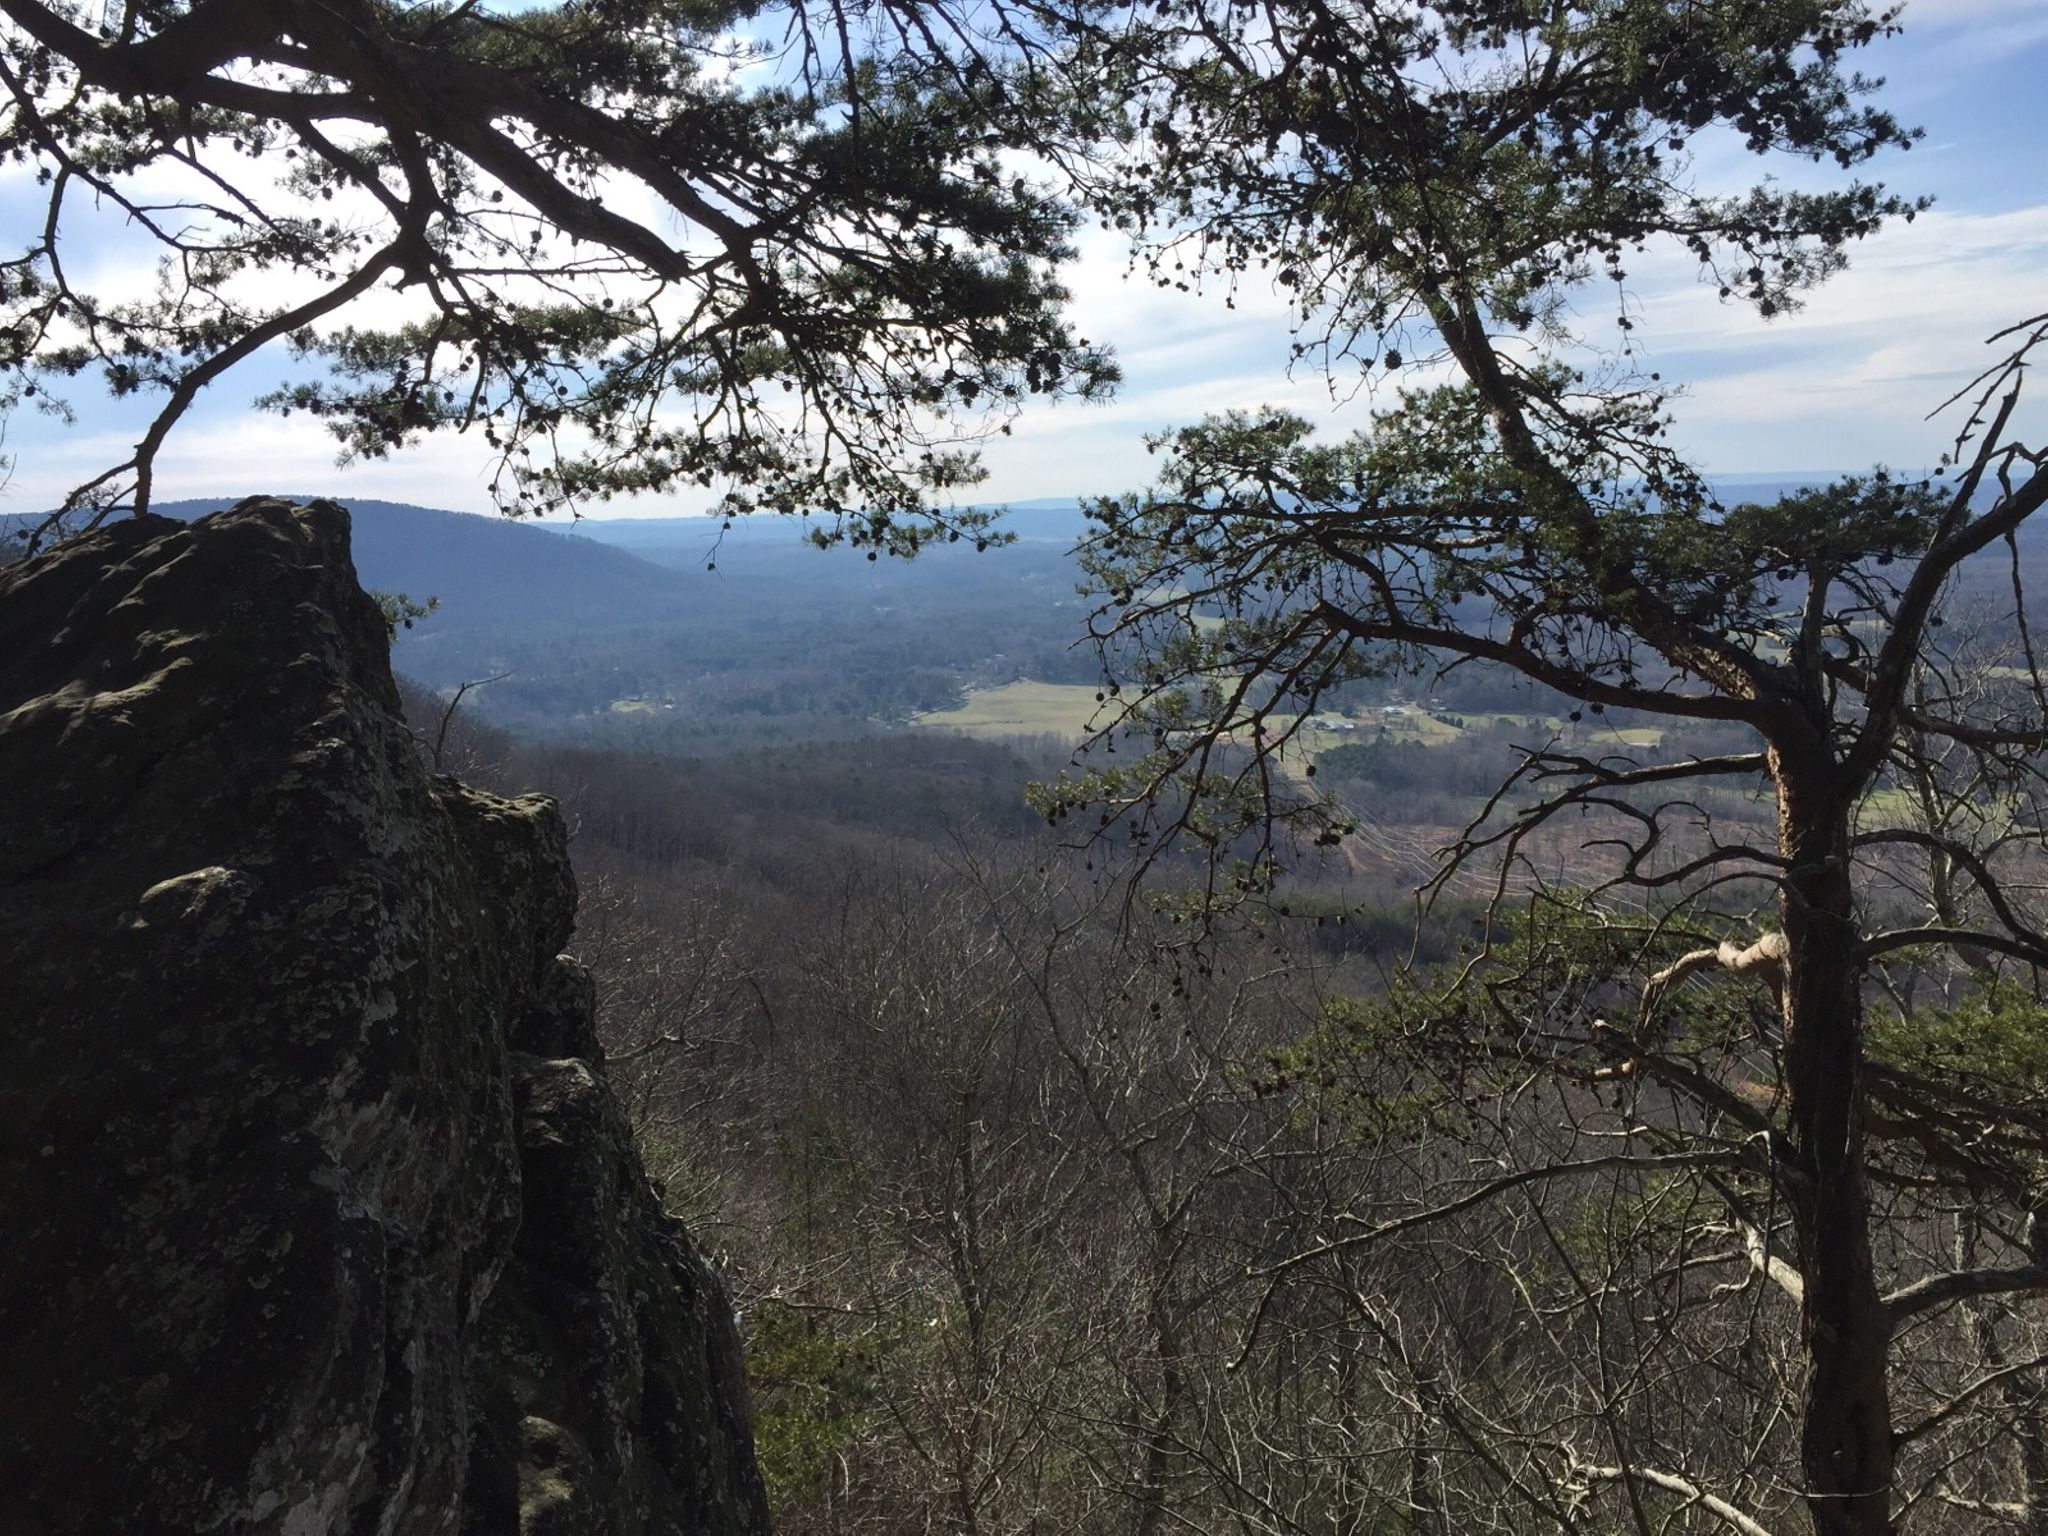 Amazing views from the crest of Dug Mountain.